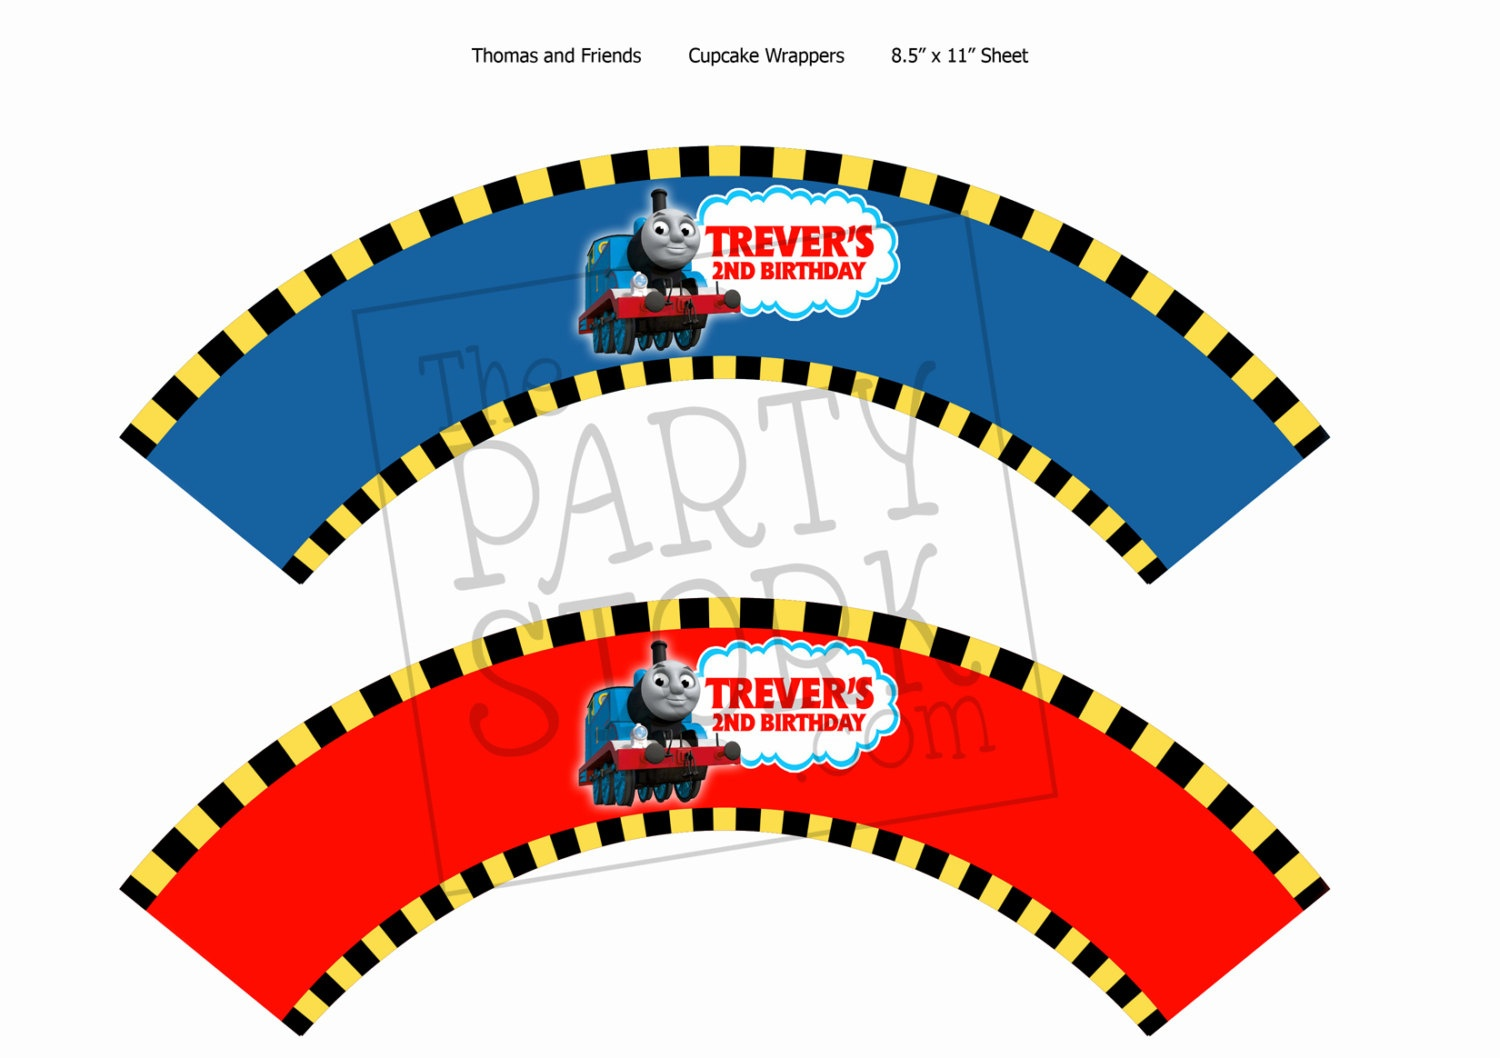 6 Thomas The Train Cupcakes Wrappers Photo - Thomas The Train - Free Printable Thomas The Train Cupcake Toppers